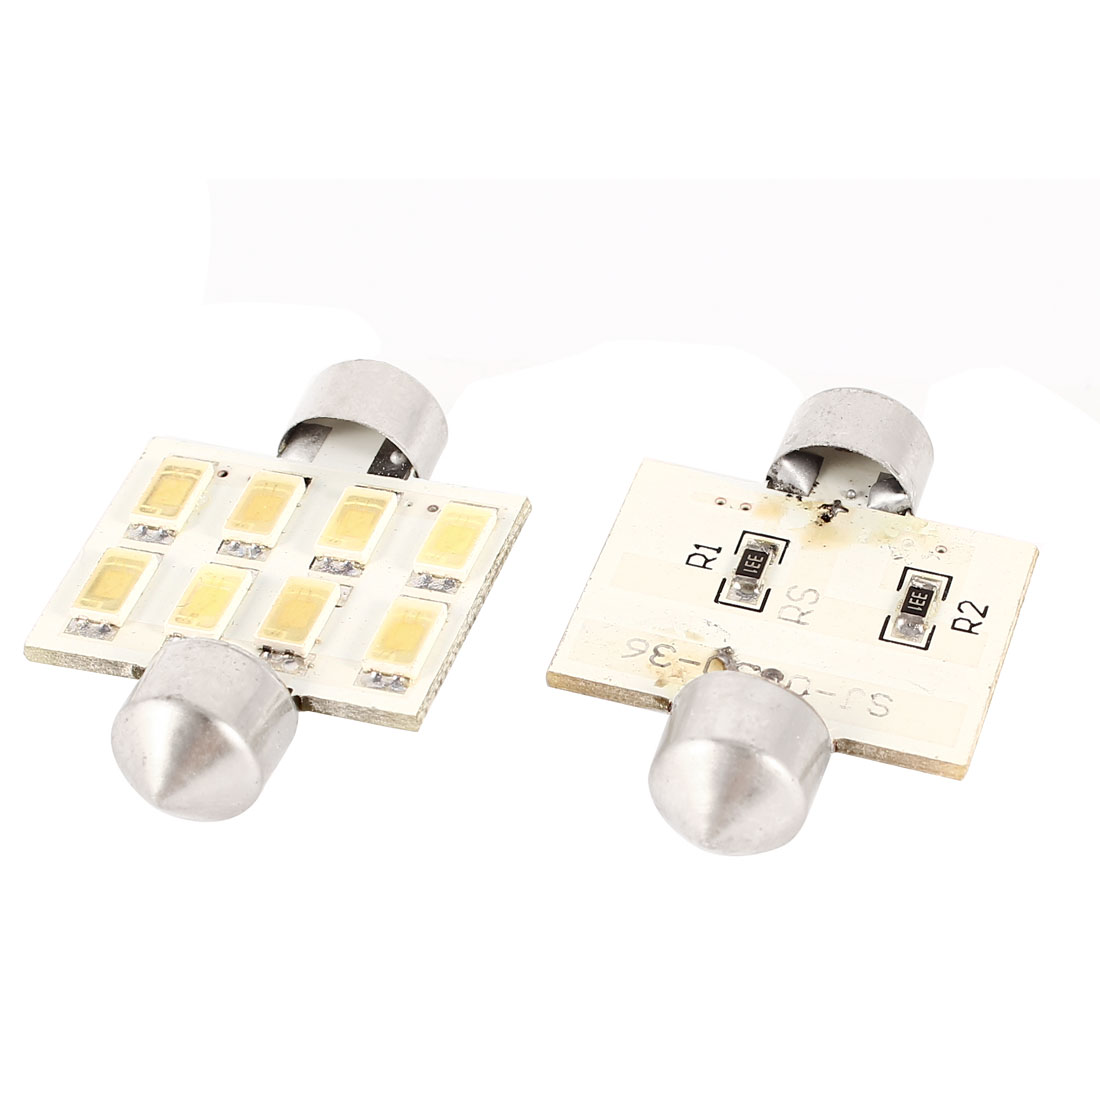 2 Pcs 36mm 5630 SMD 8 LED White Internal Festoon Dome Light Bulbs DE3423 DE3425